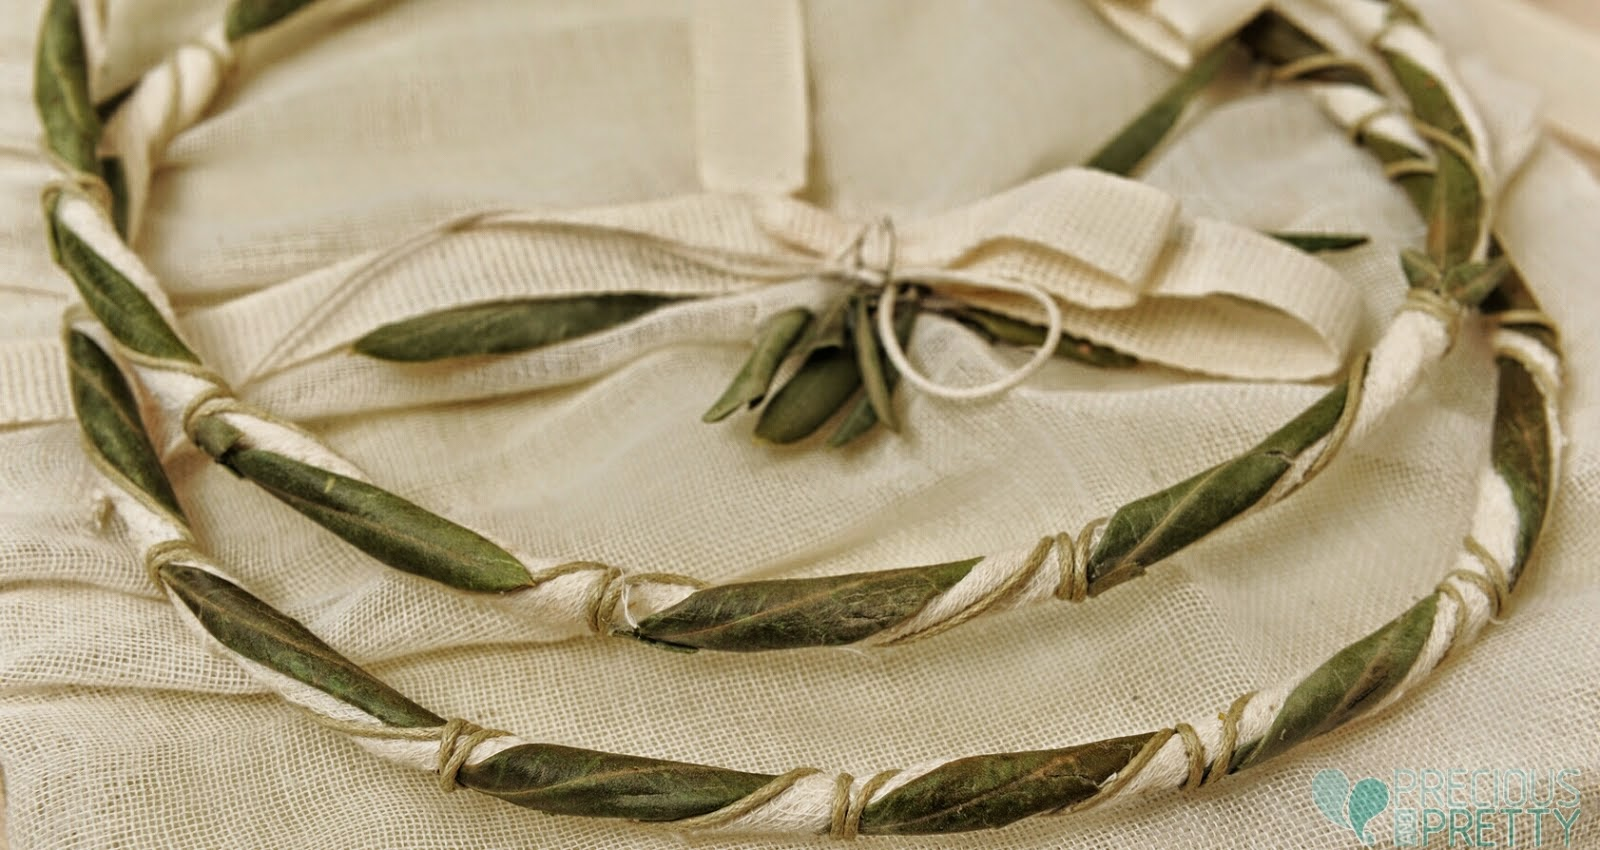 greek wedding stefana with olive leaves wedding crowns Greek crowns stefana for weddings with olive leaves